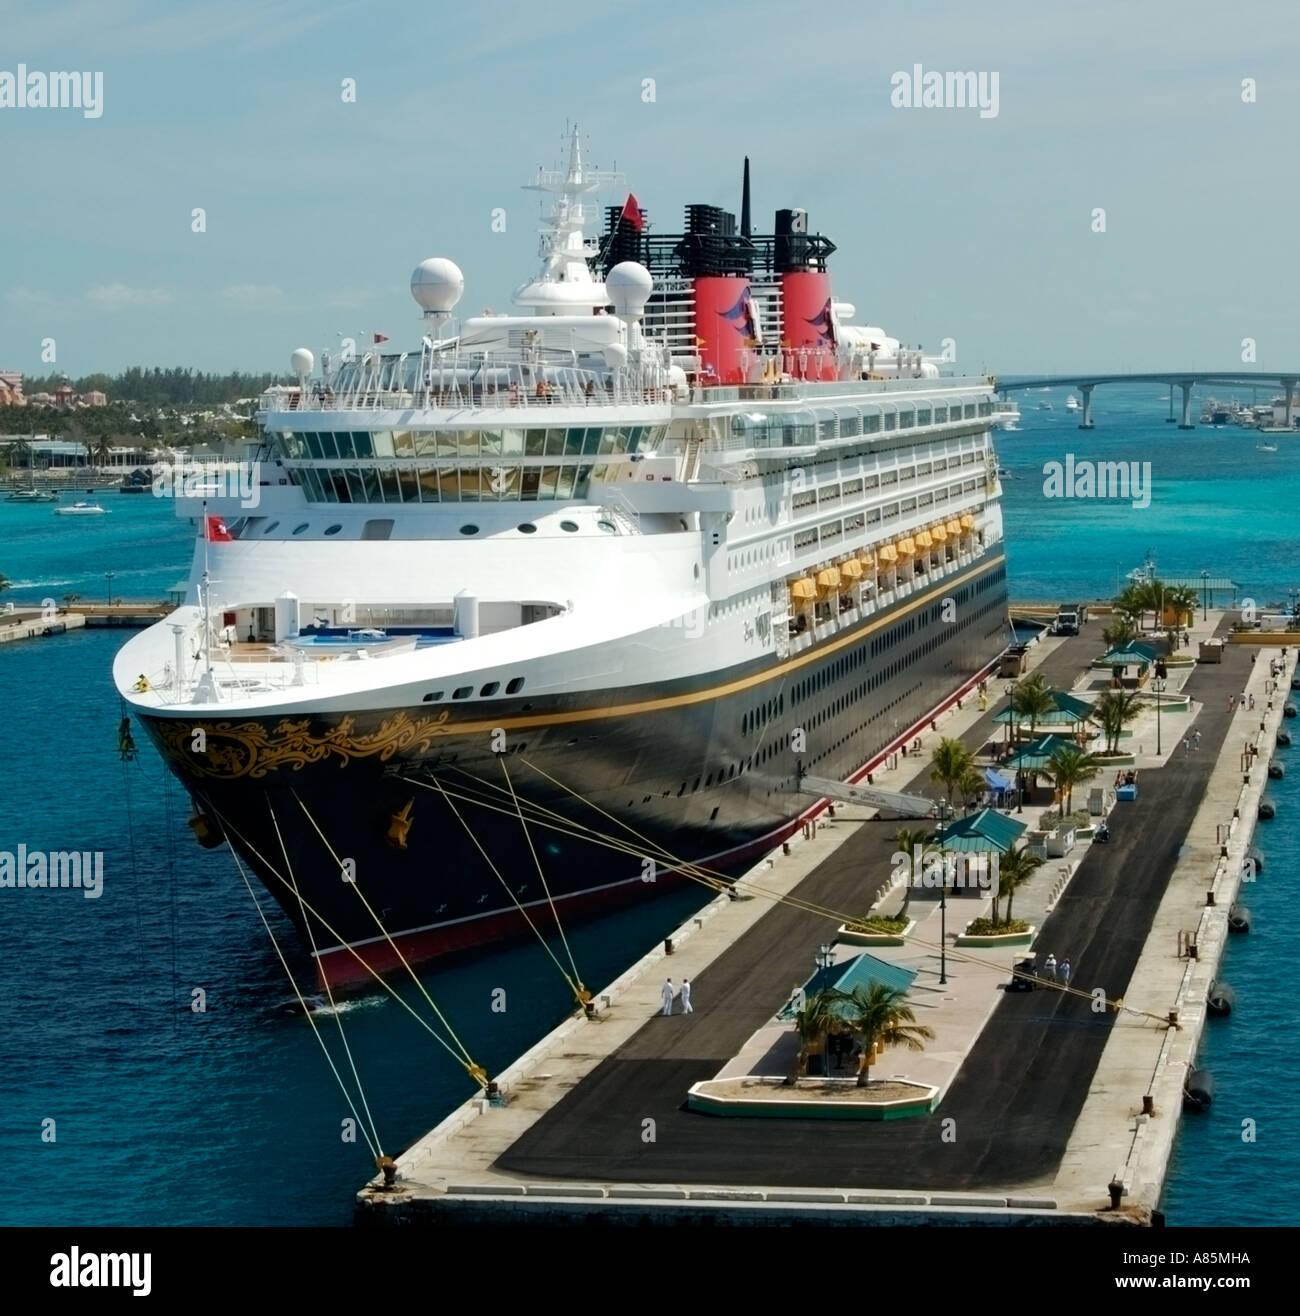 Cruise ship at port nassau bahamas stock photo royalty free image 6854681 alamy - Cruise port nassau bahamas ...